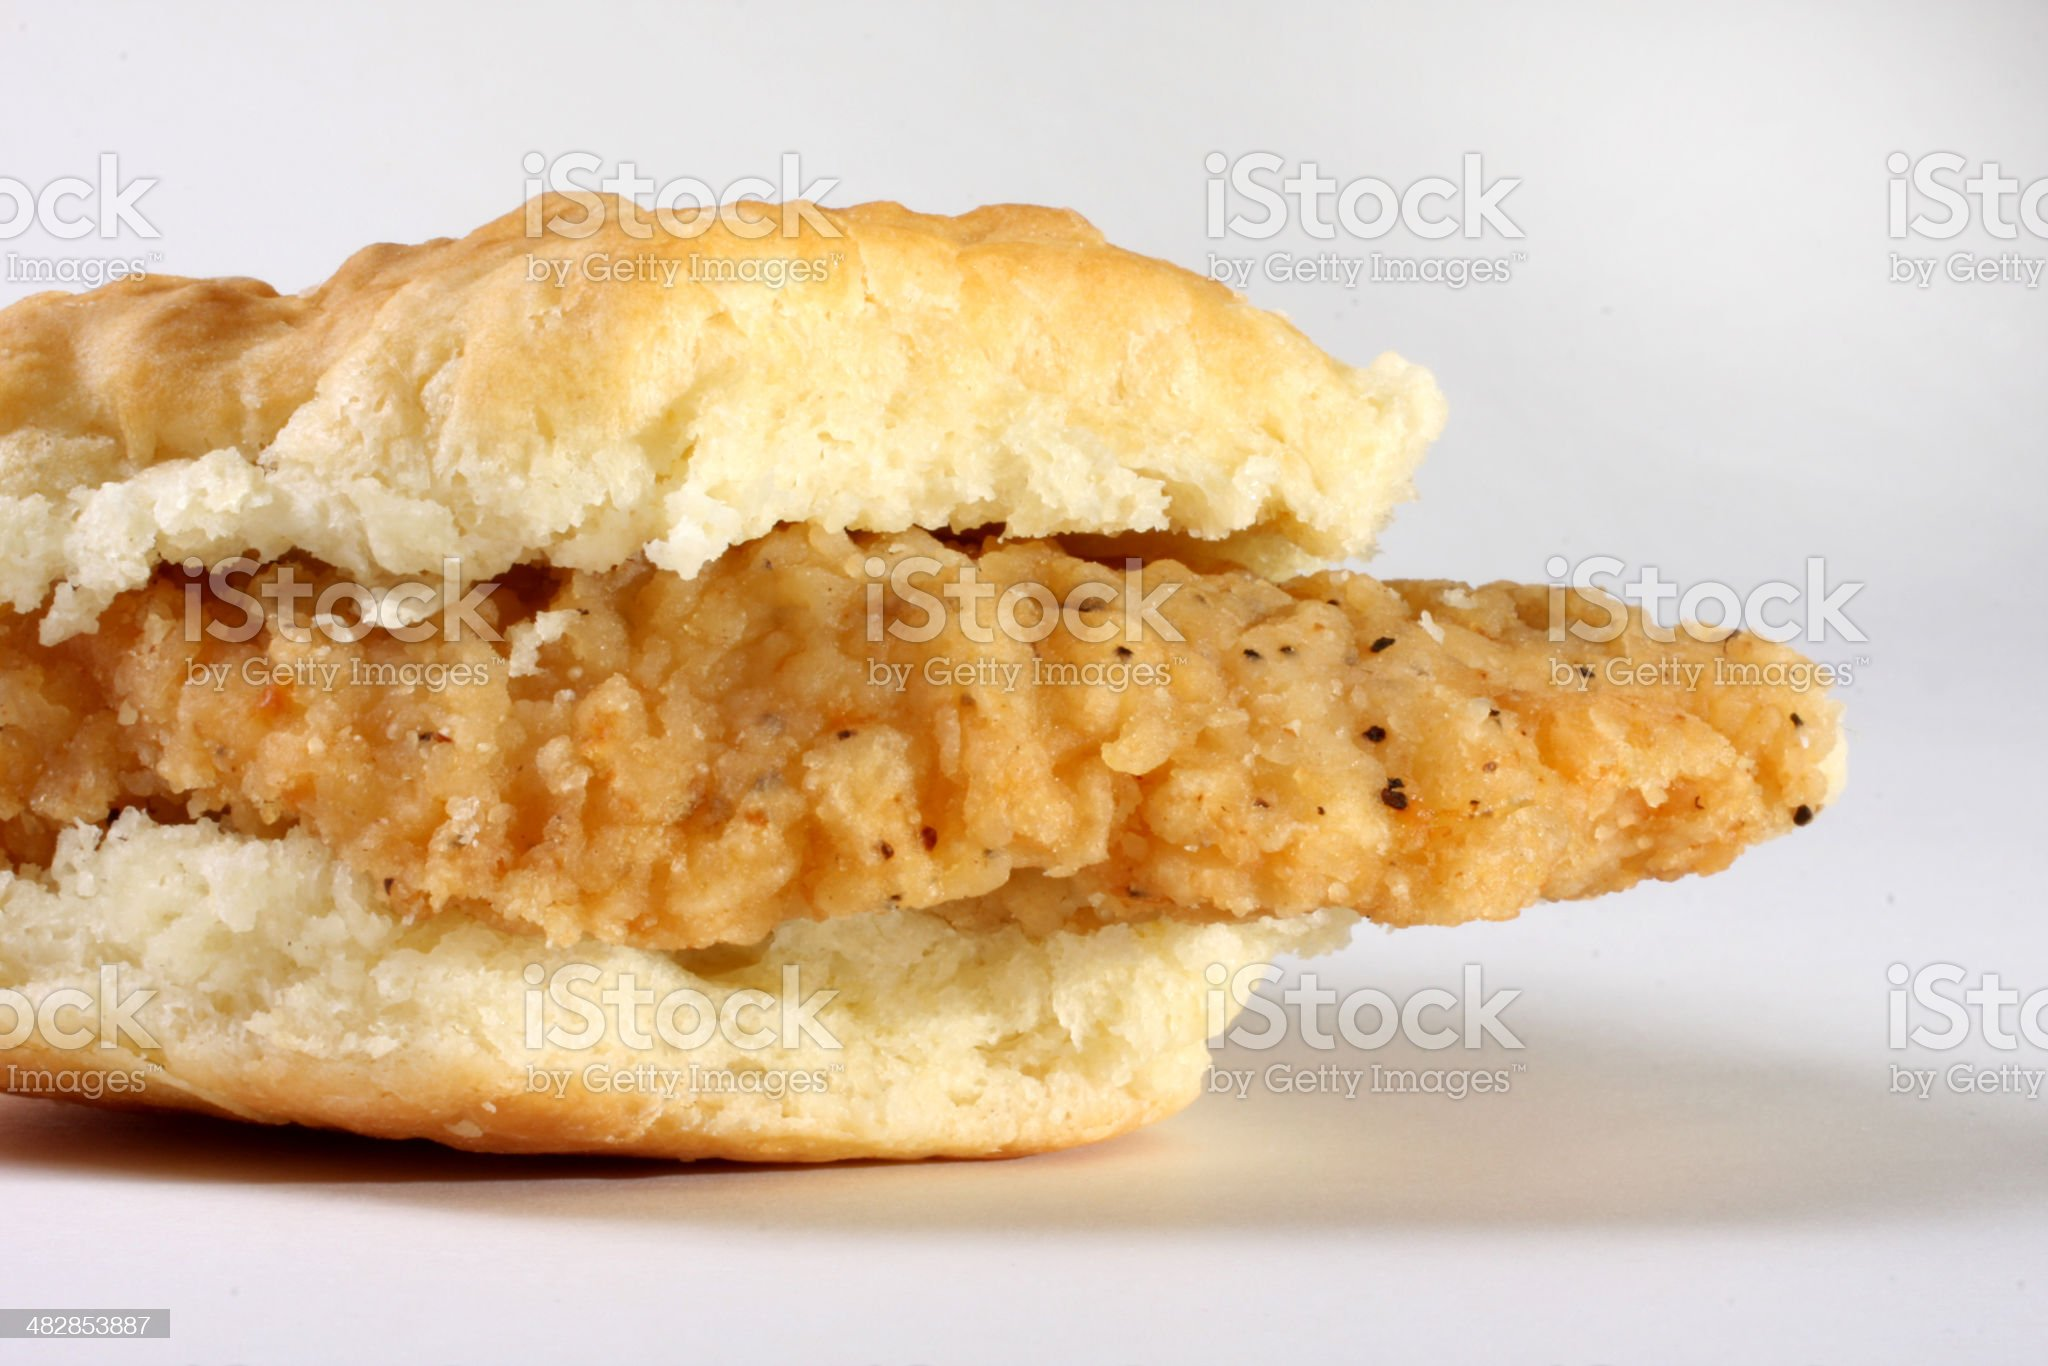 chicken biscuit royalty-free stock photo